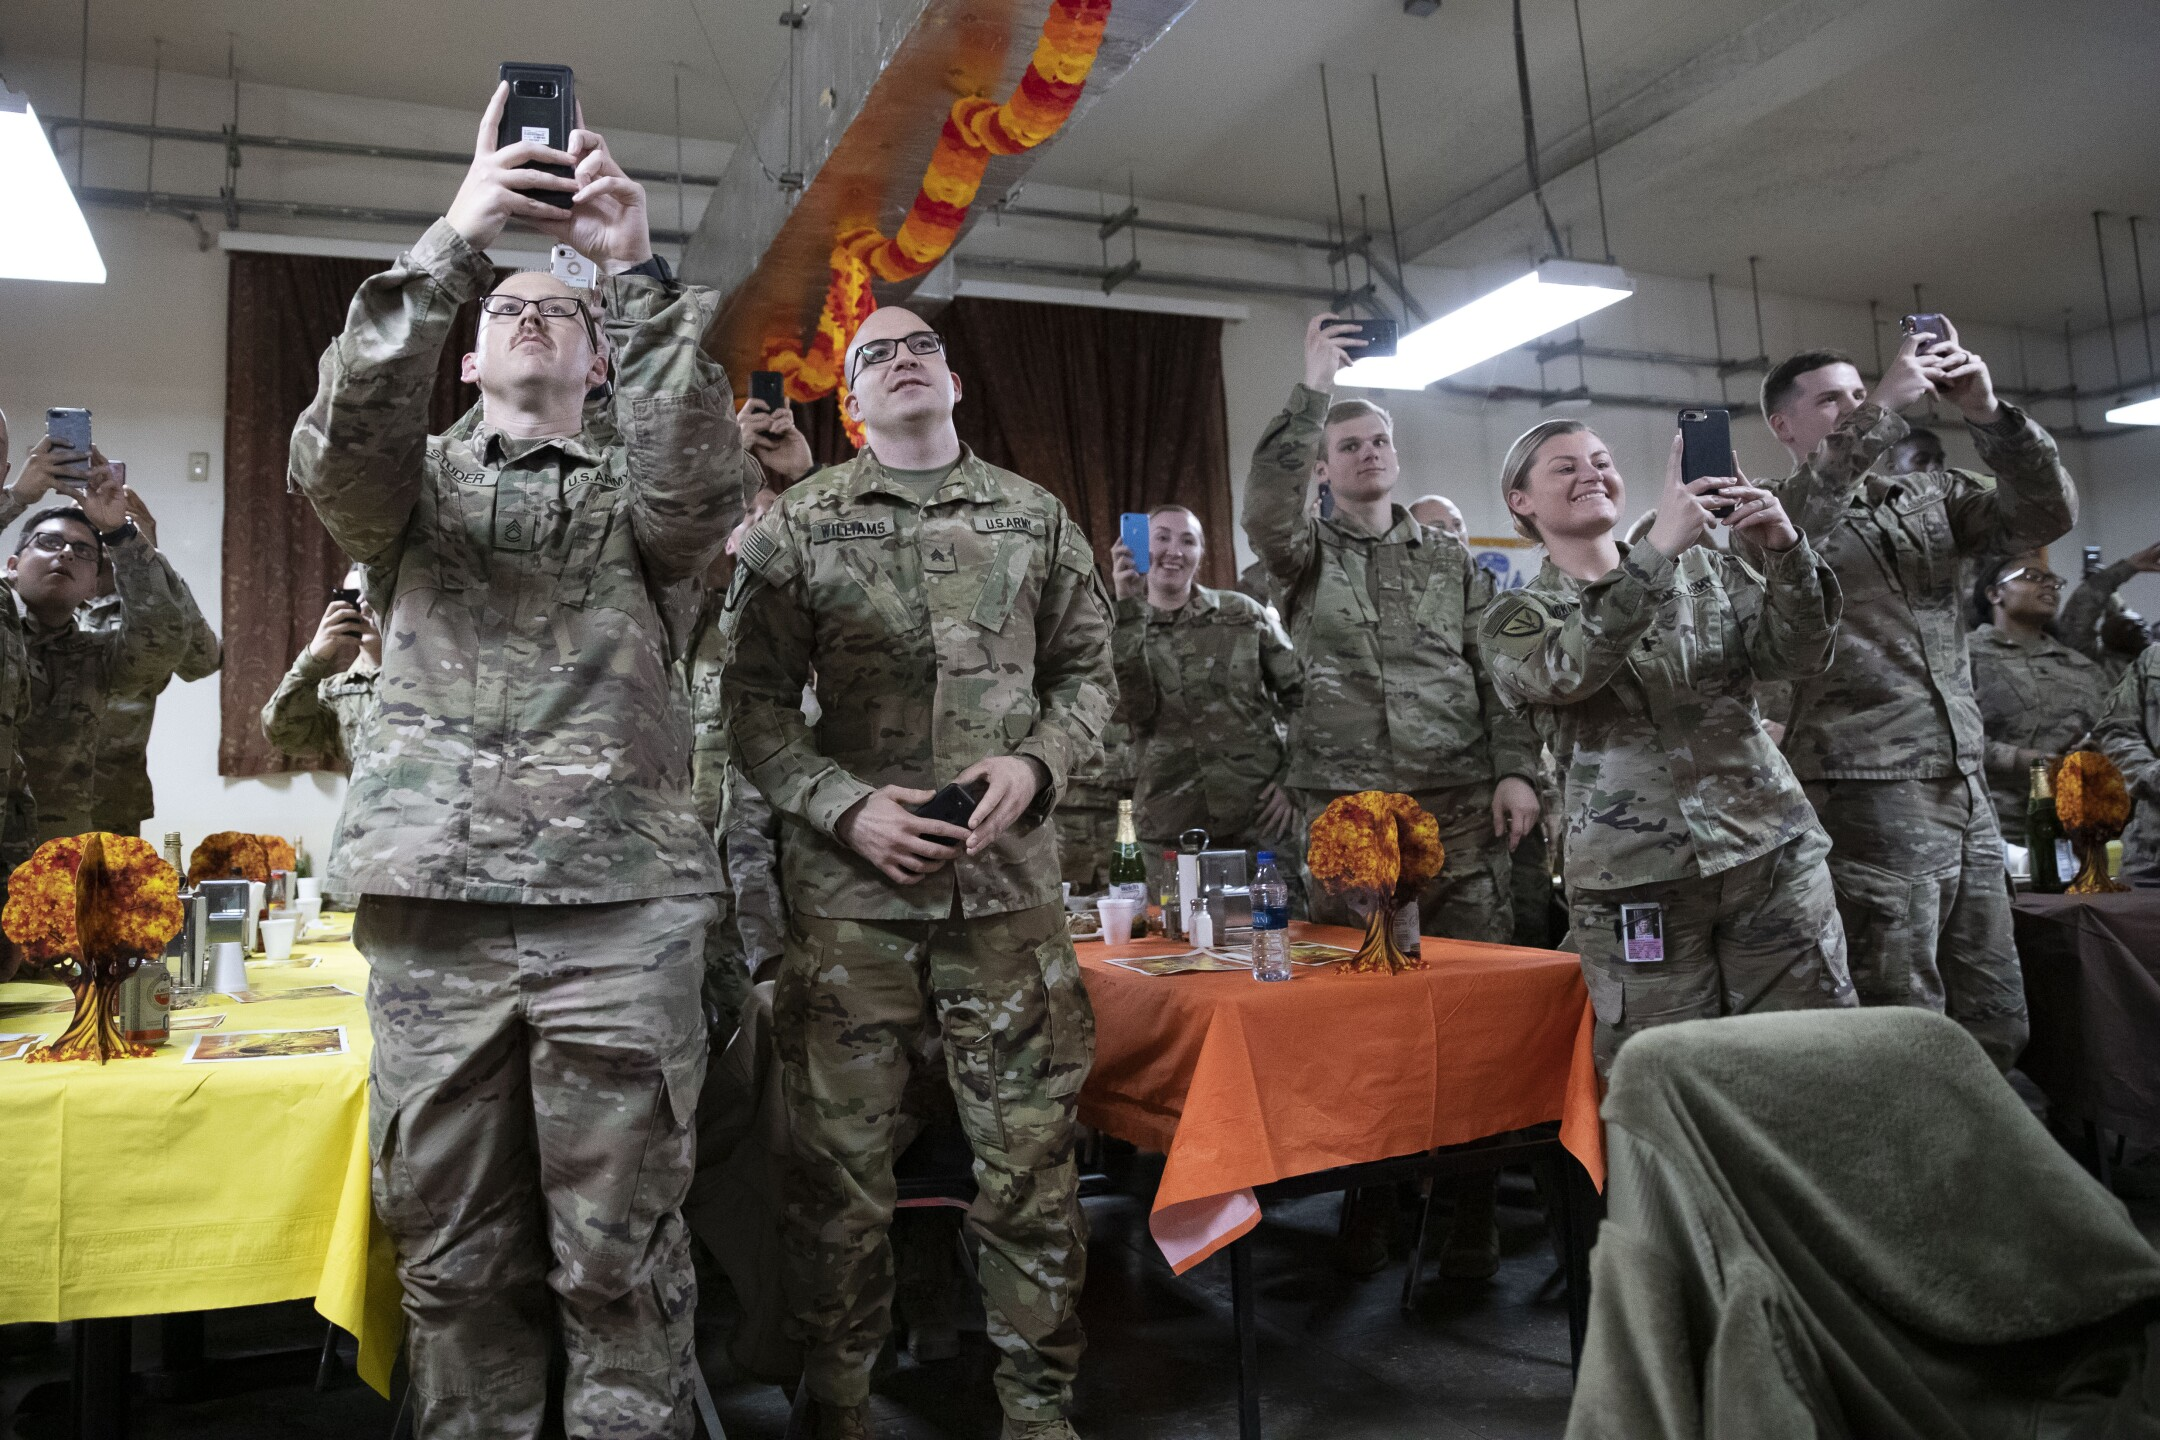 PHOTOS: Trump makes surprise Thanksgiving visit to troops in Afghanistan